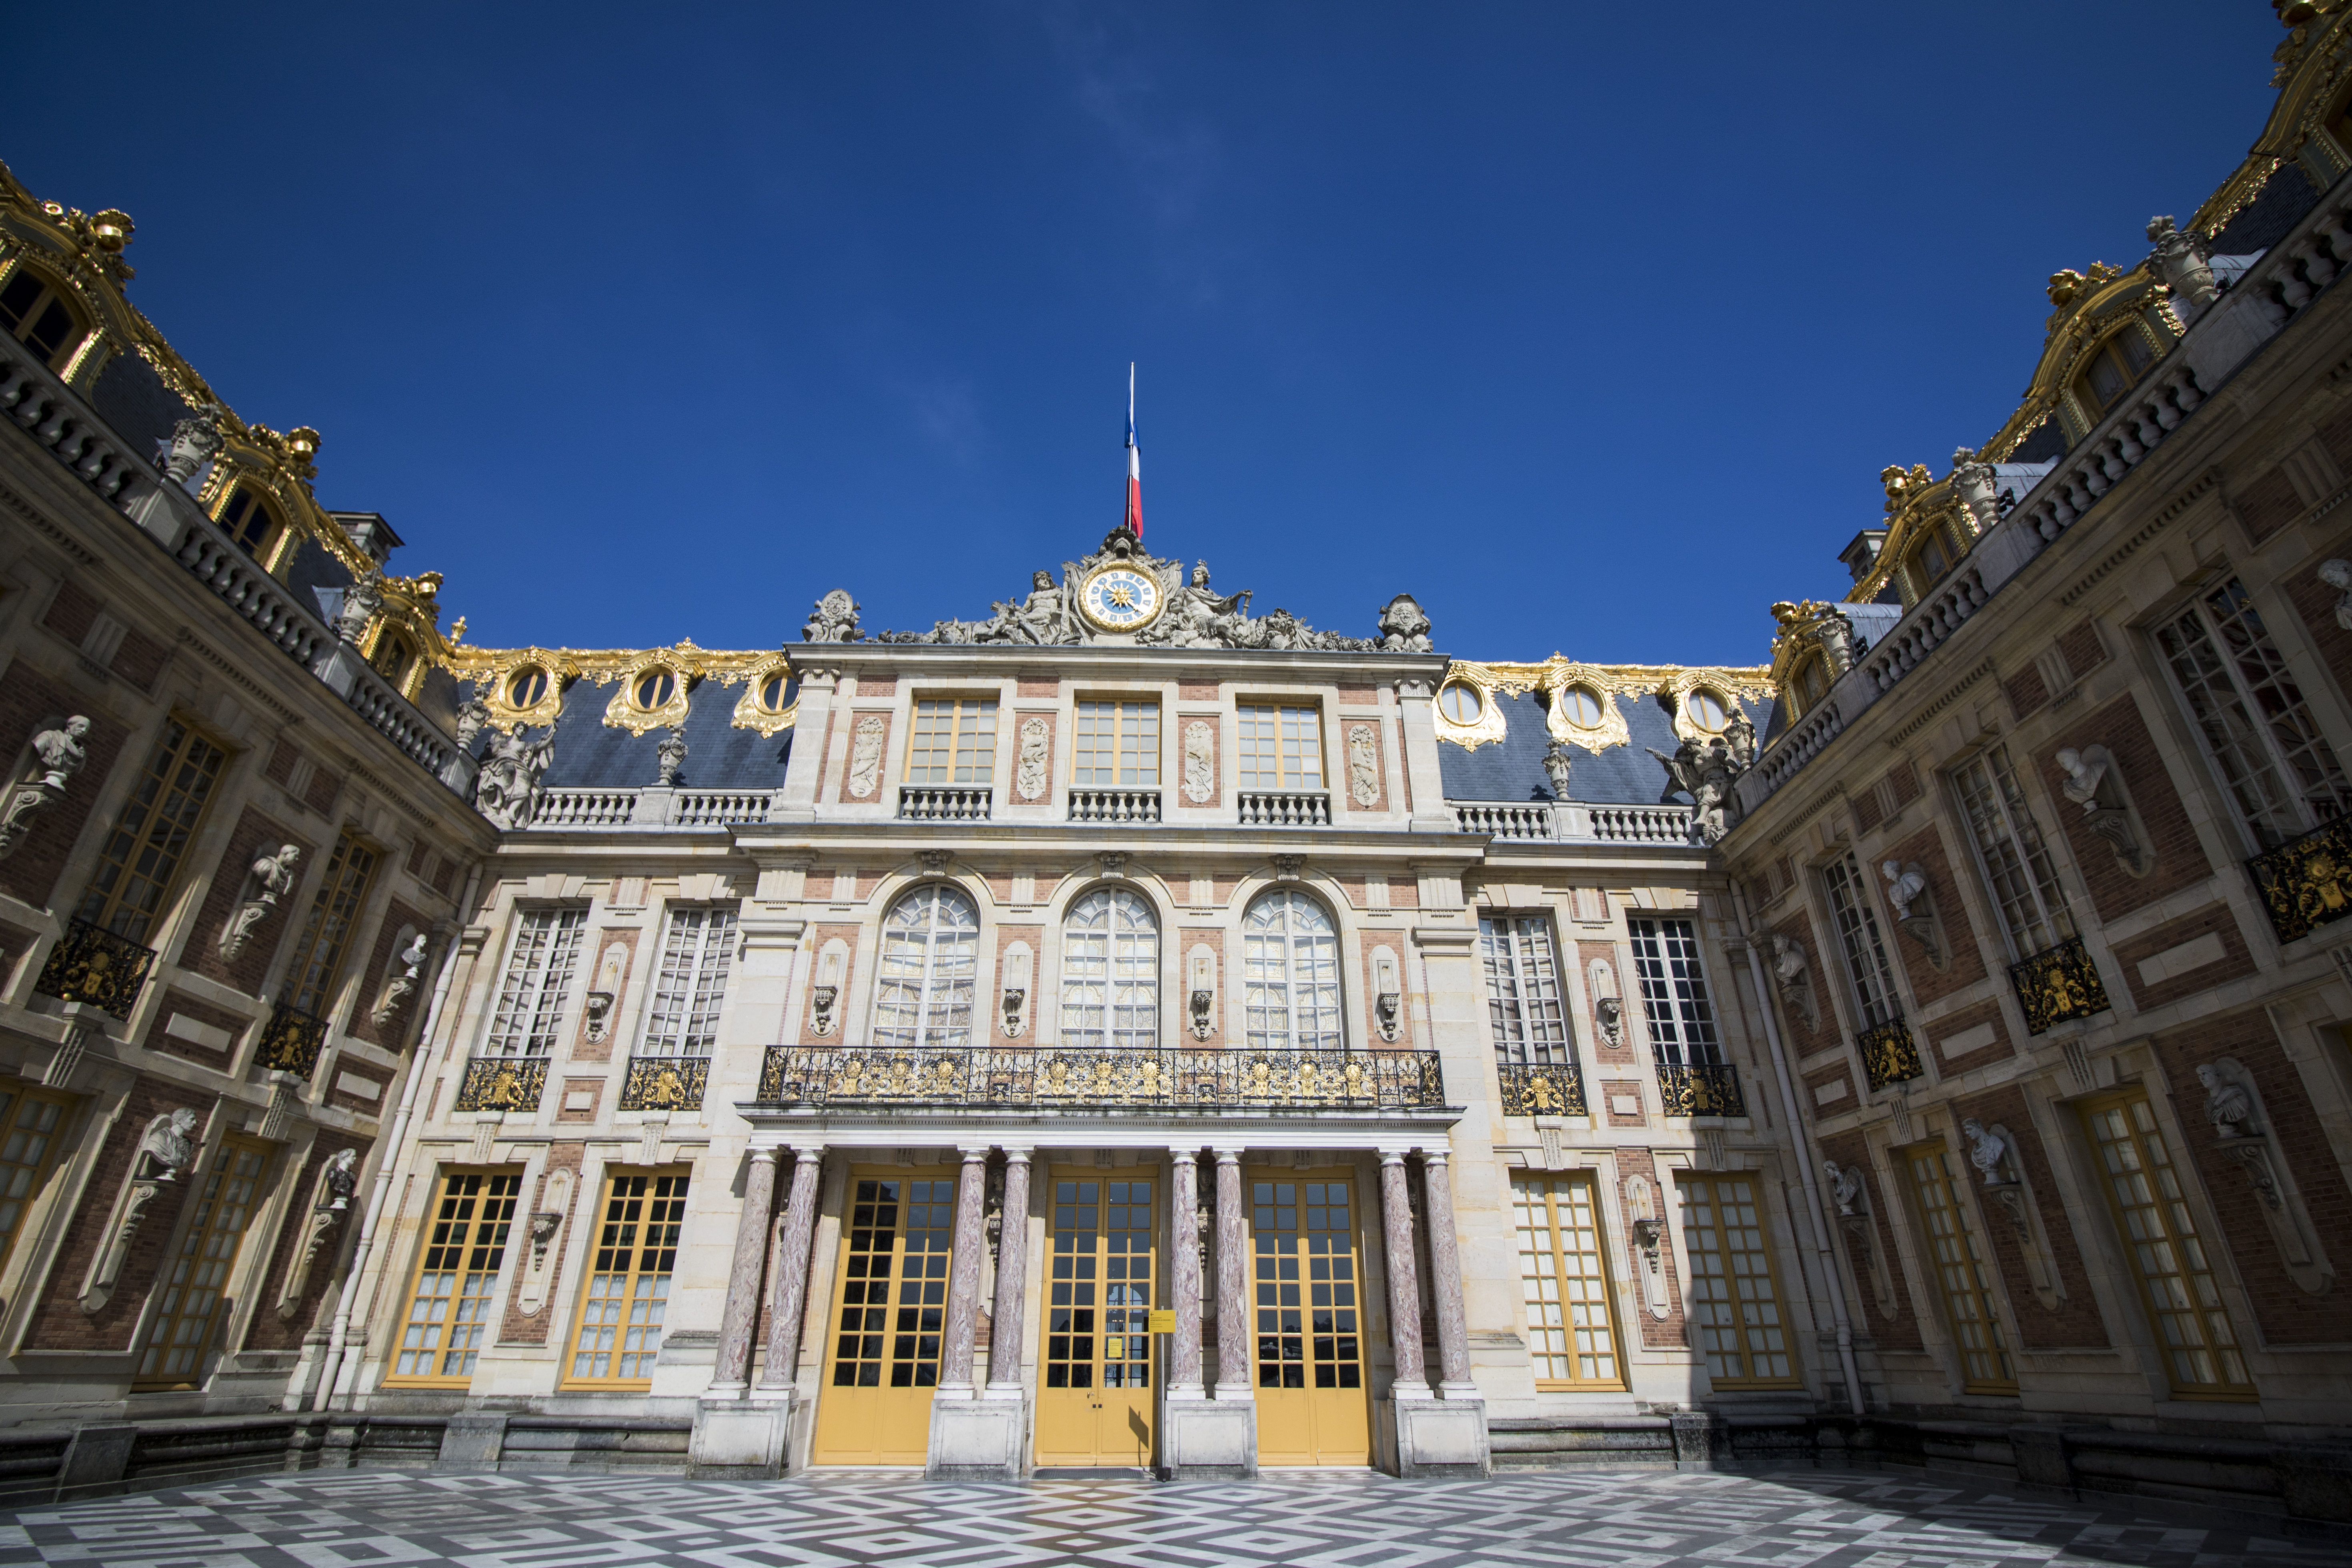 Explore the extensive grounds of Versailles